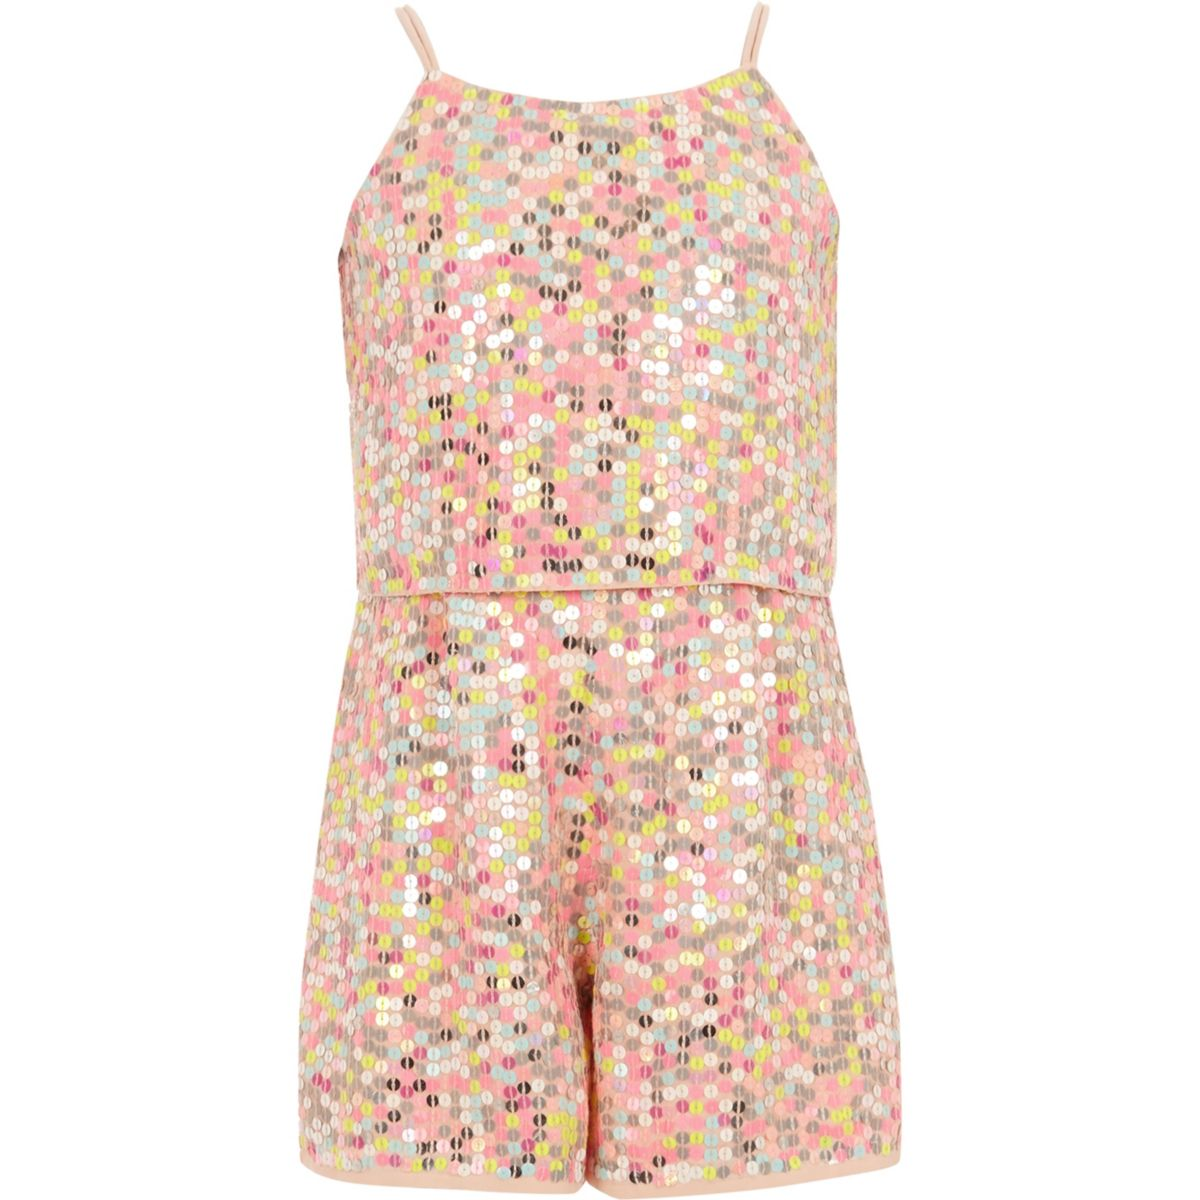 Girls pink sequin embellished romper